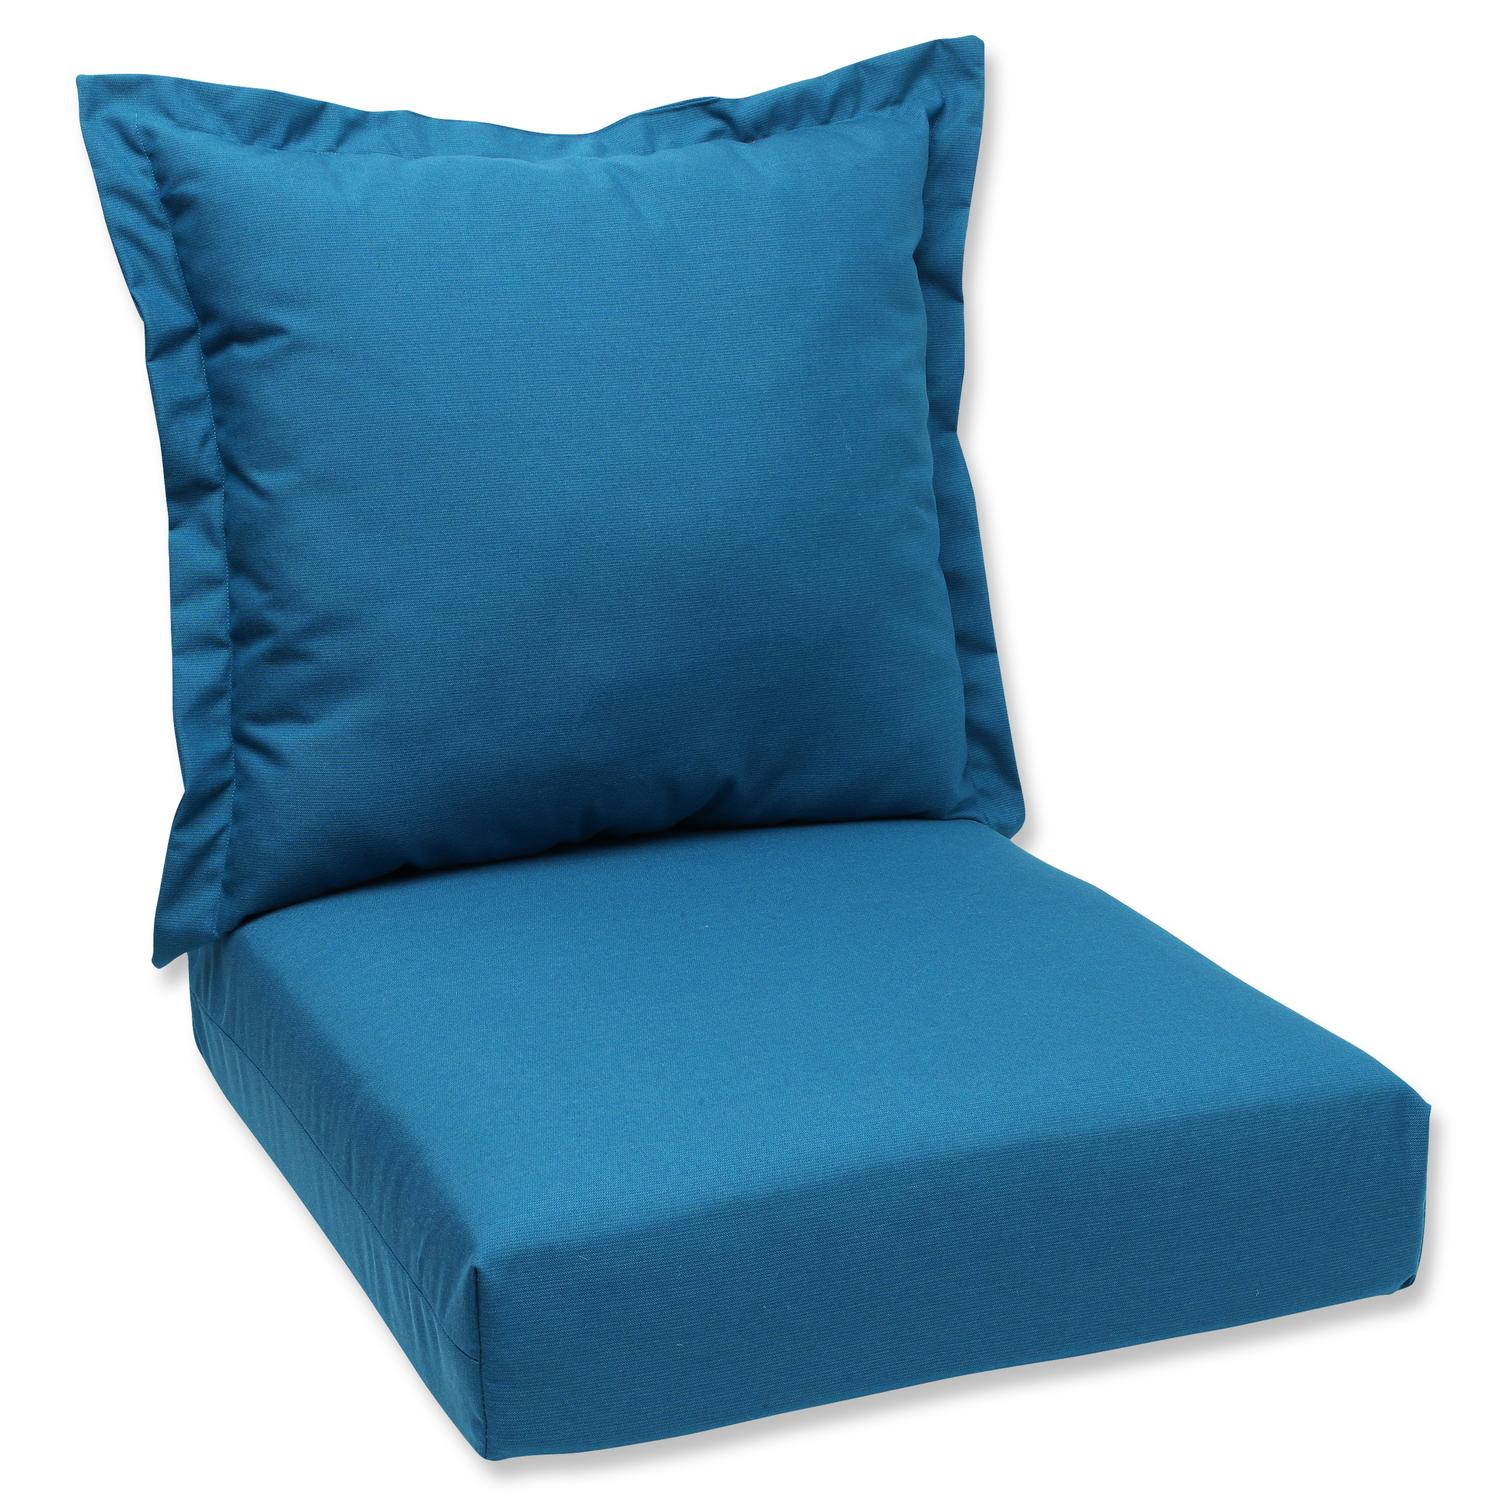 "44"" Sunbrella Peacock Blue Outdoor Patio Deep Seating Cushion and Back Pillow"